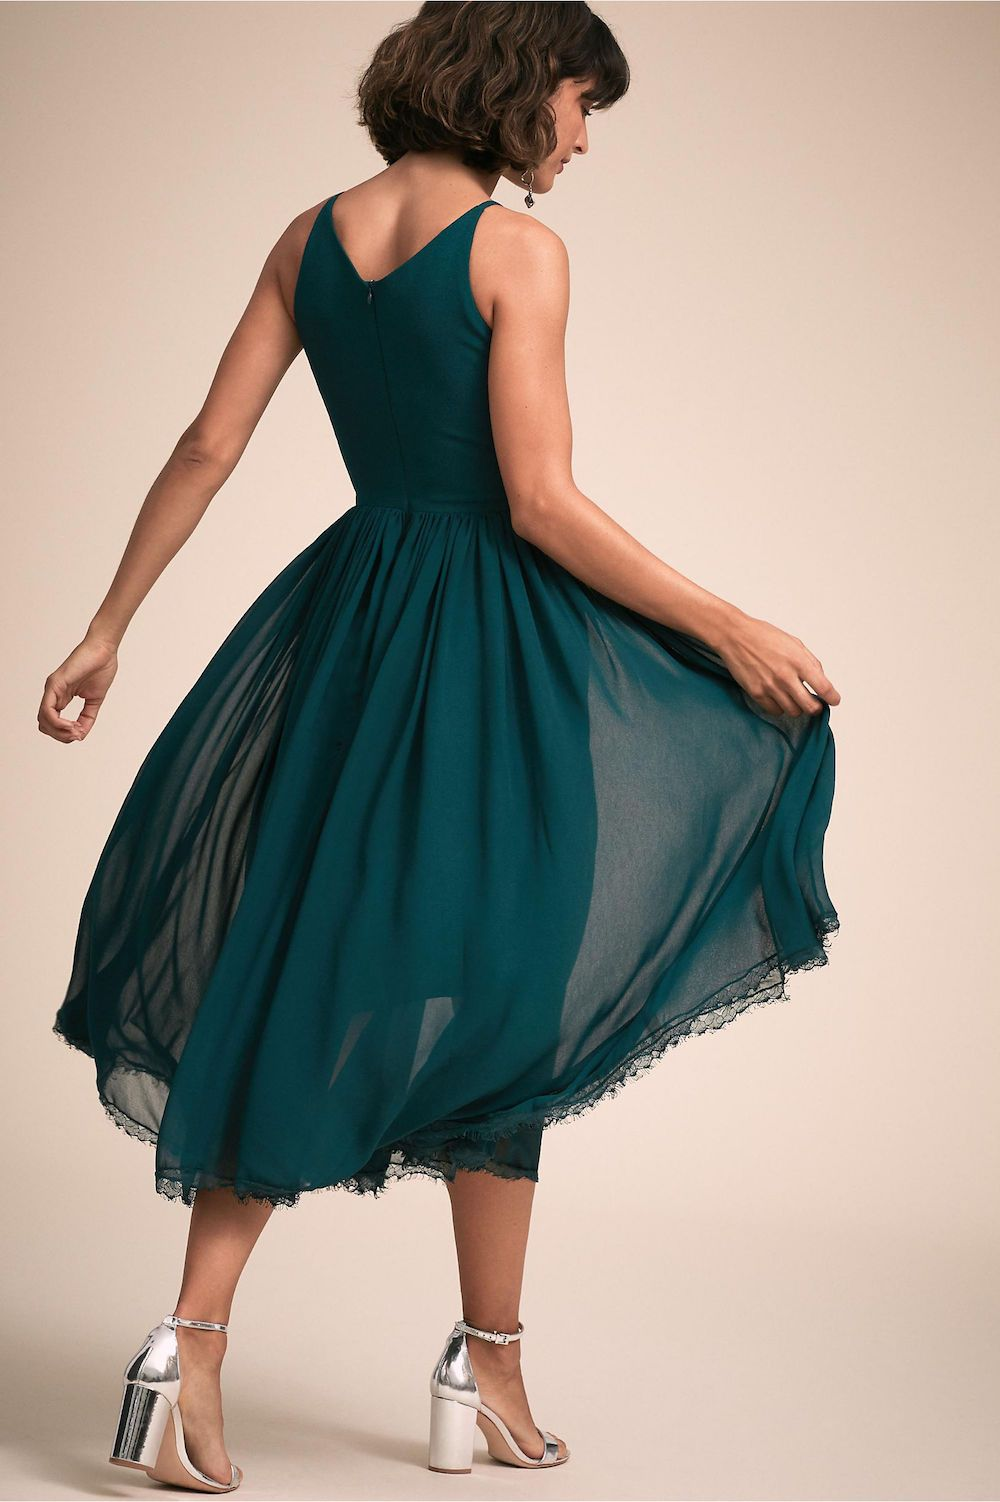 Dresses to wear to a fall wedding for a guest   DropDead Gorgeous BHLDN Wedding Guest Dresses to Perfect Your